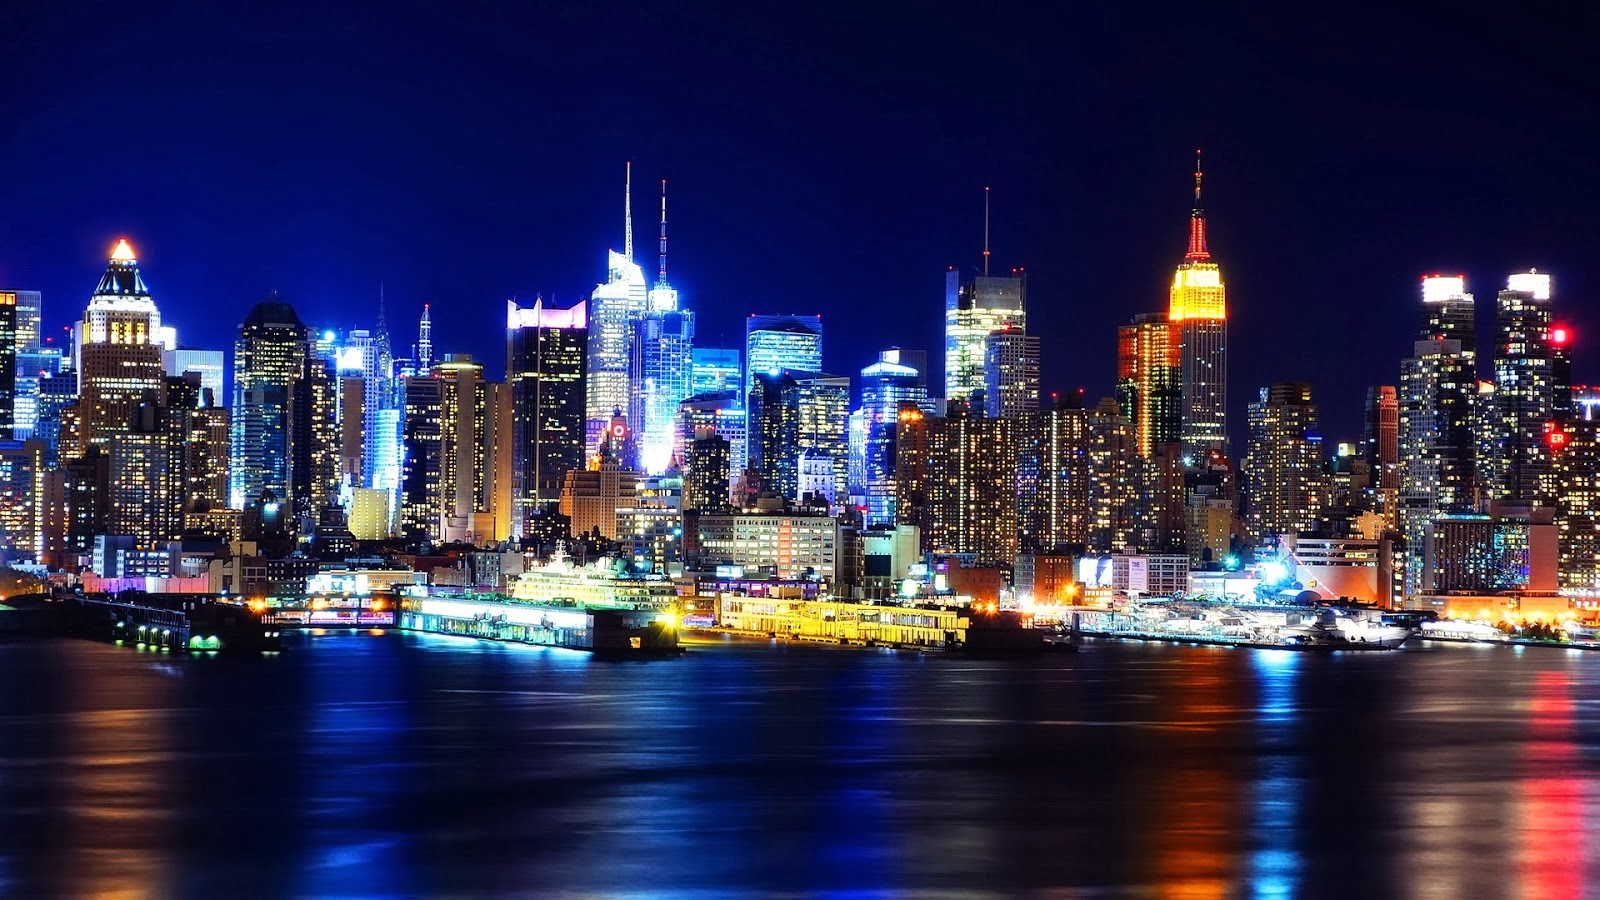 HD WALLPAPERS: Download New York City HD Wallpapers 1080p